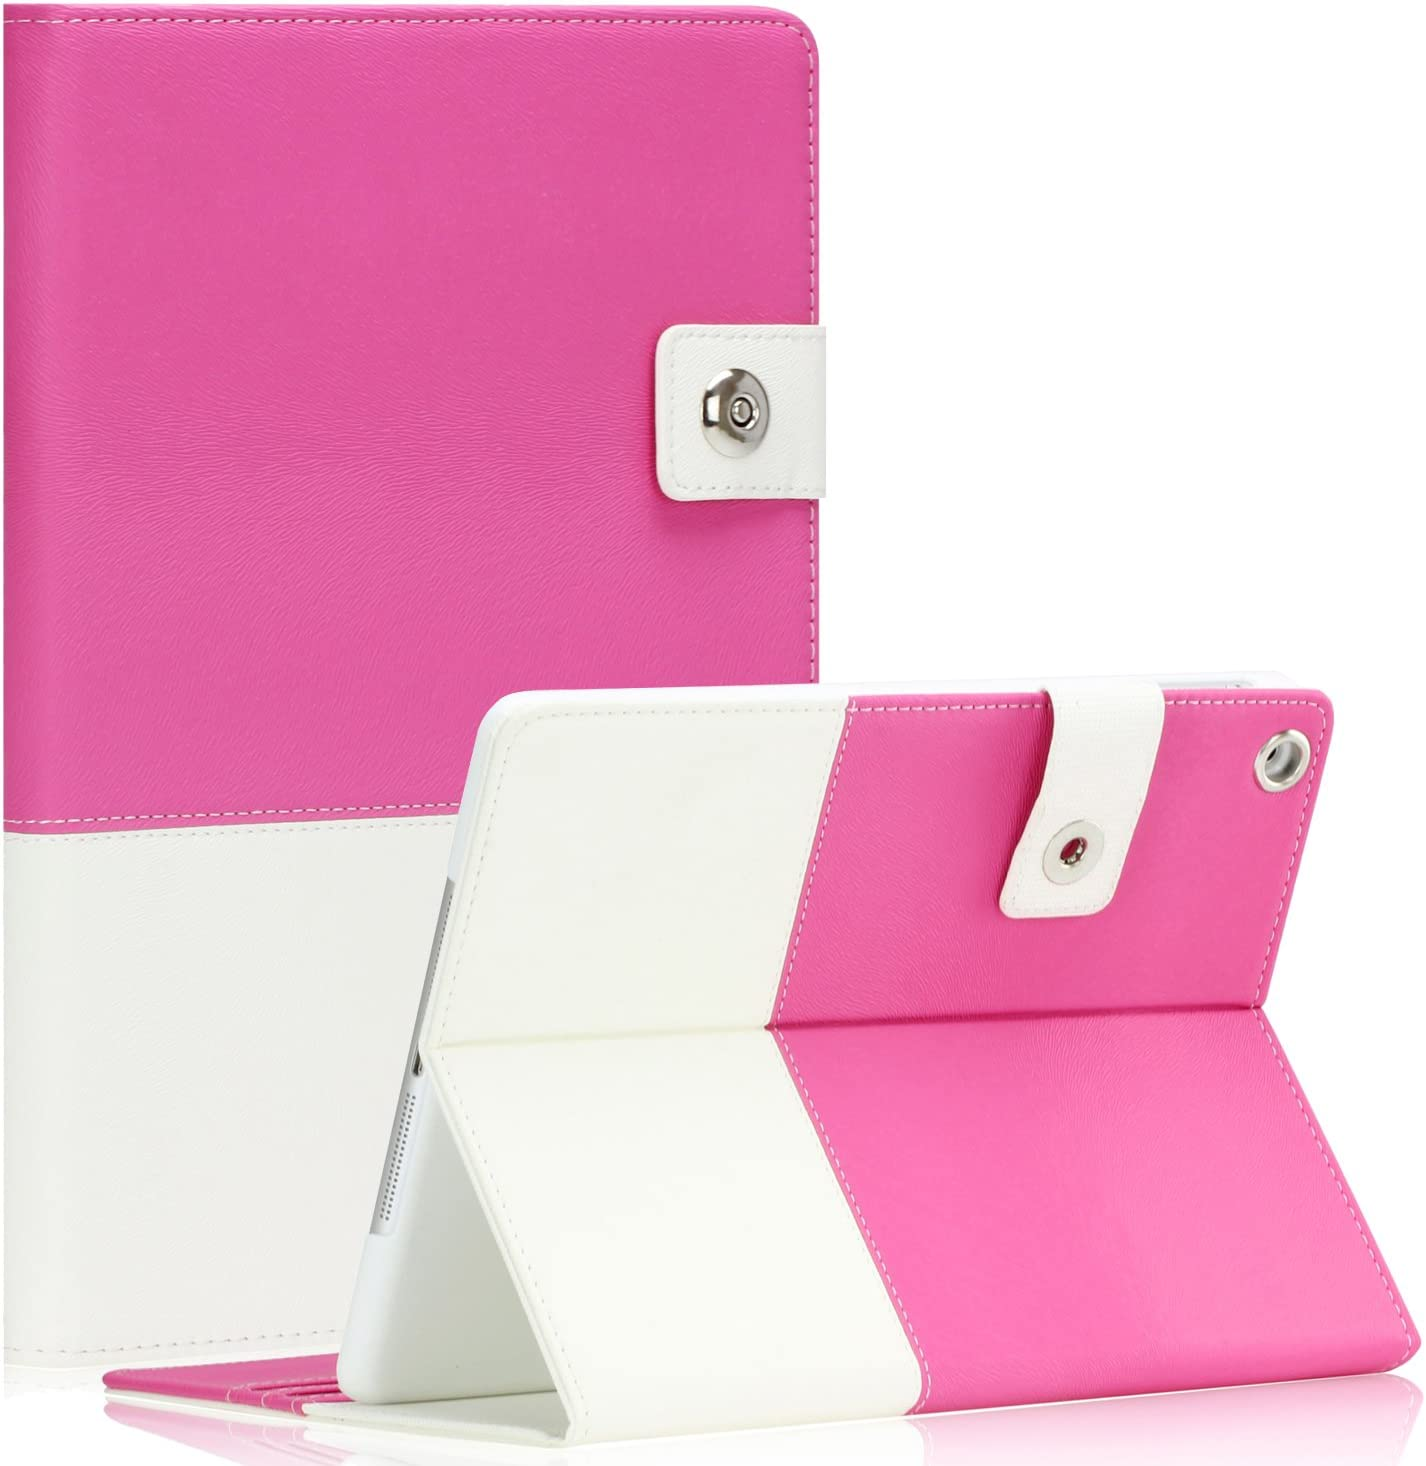 SAVEICON Hybrid Leather Folio Case Cover for Apple New iPad Mini/Mini 2 / Mini 3 Case 7.9 Inch WiFi 3G 4G LTE with Built-in Stand and Card Slots Auto Wake/Sleep Smart Cover (Hot Pink)